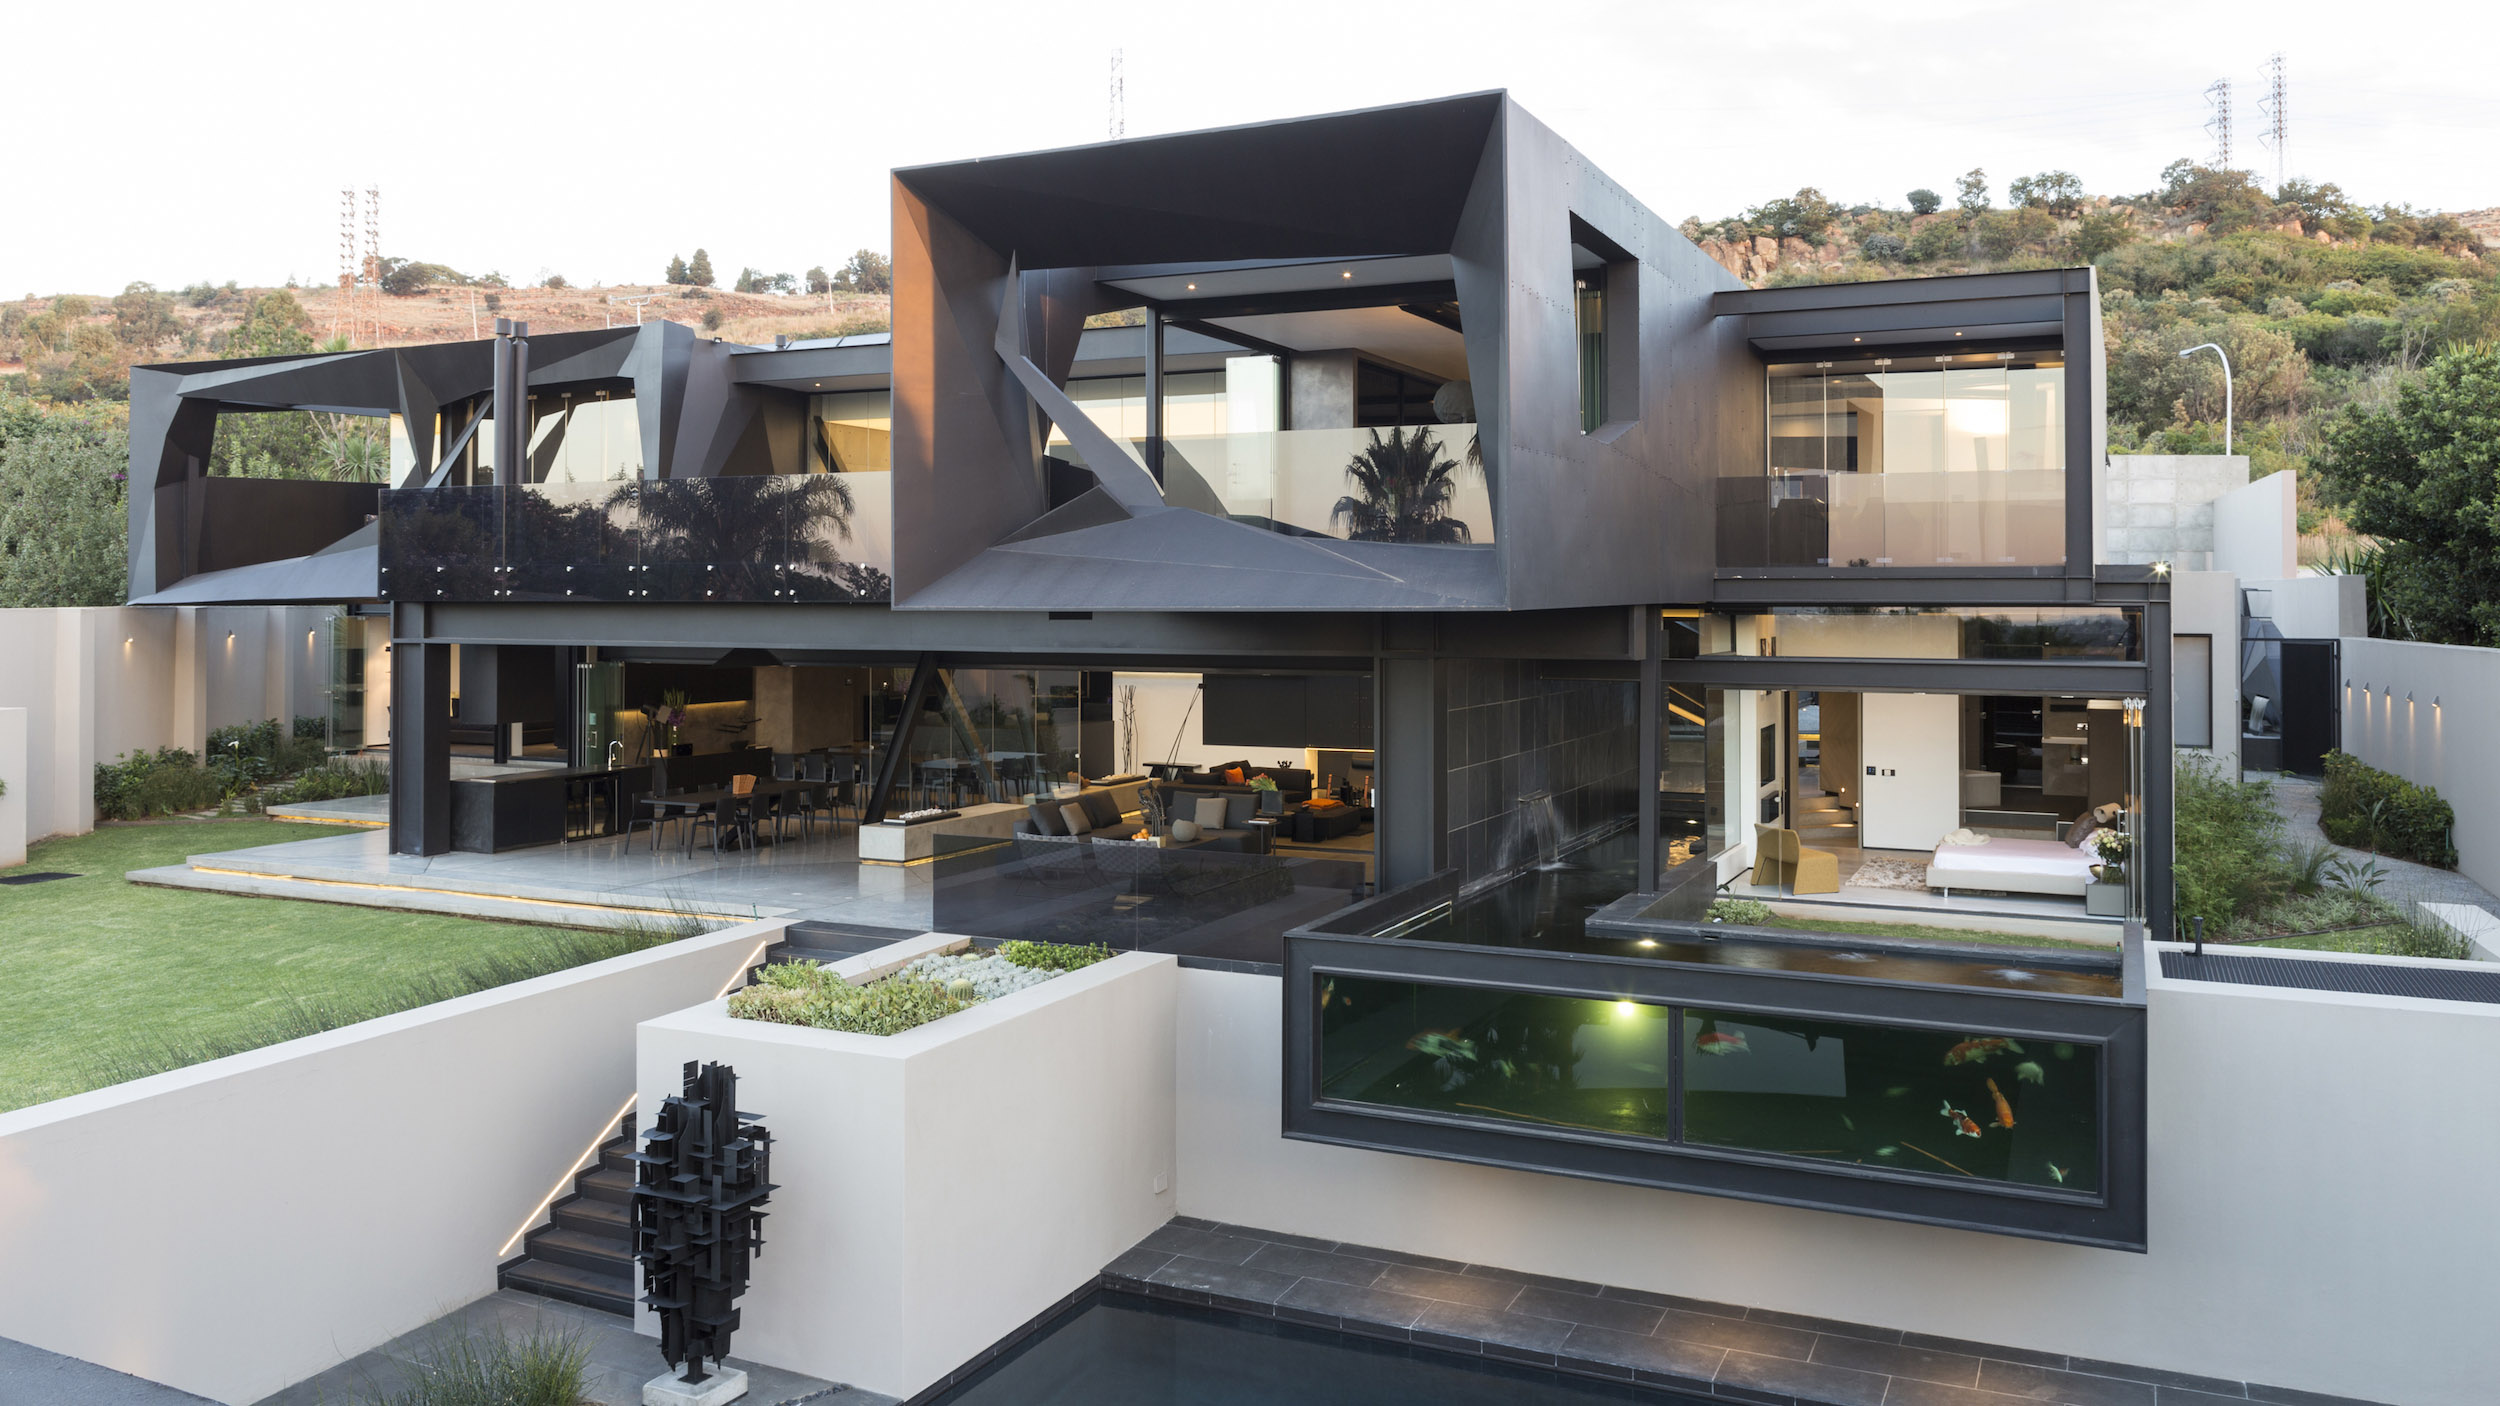 Kloof Road Masterpiece House in Johannesburg by Nico van der Meulen Architects-07